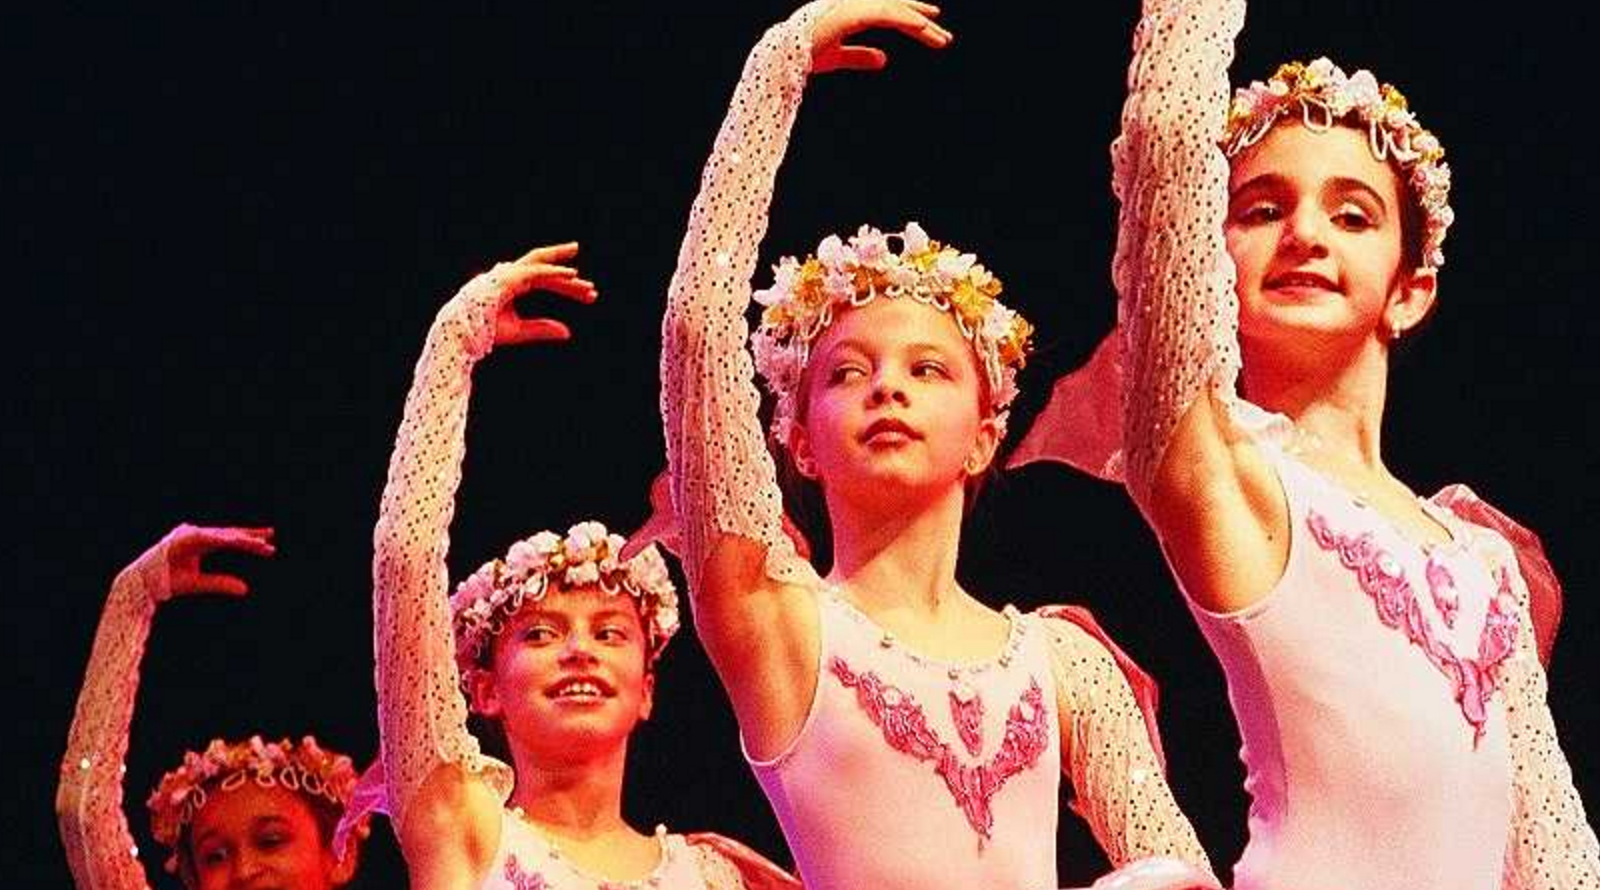 Production Of The Nutcracker Meets Sensory Needs Of Children With Autism